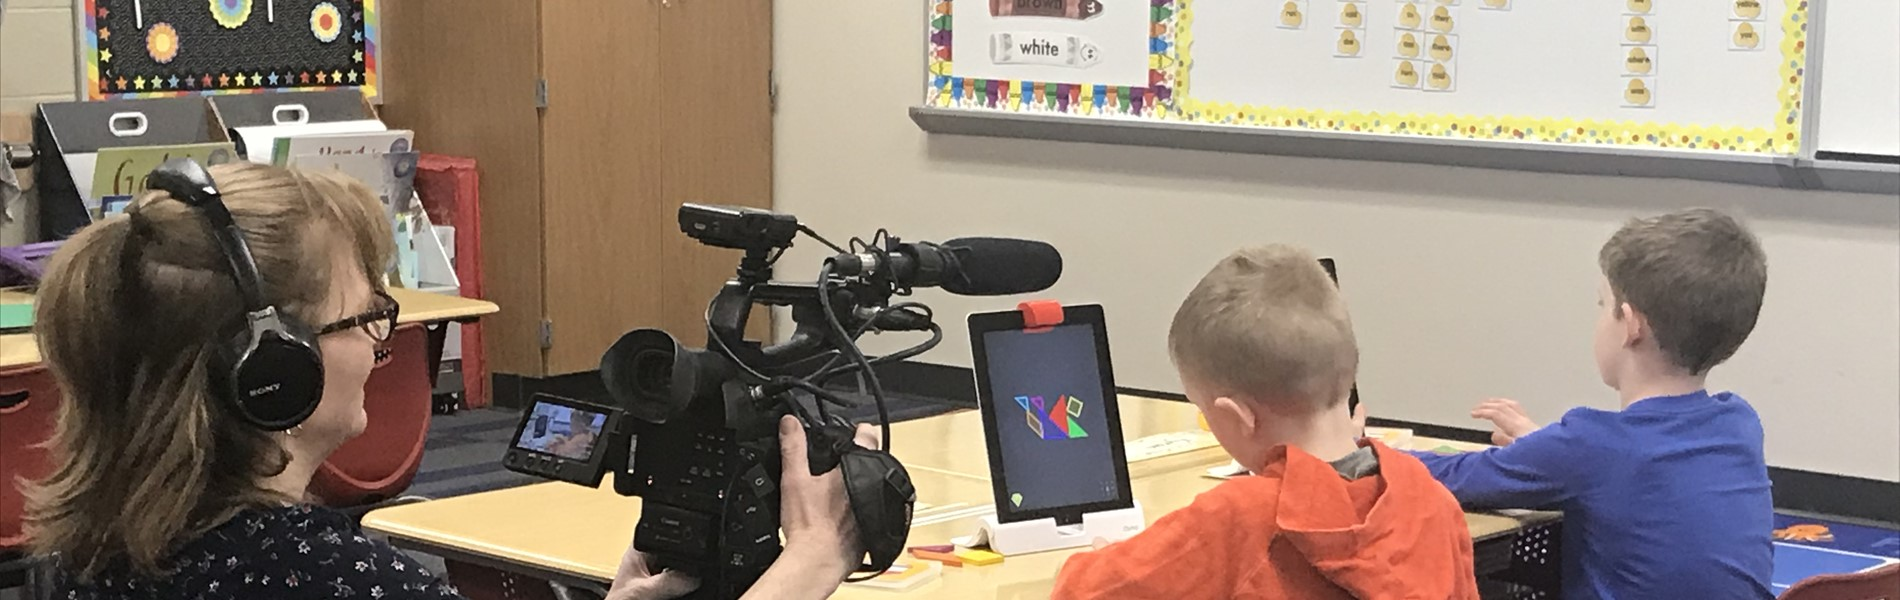 PBS videotaping student learning with ipads